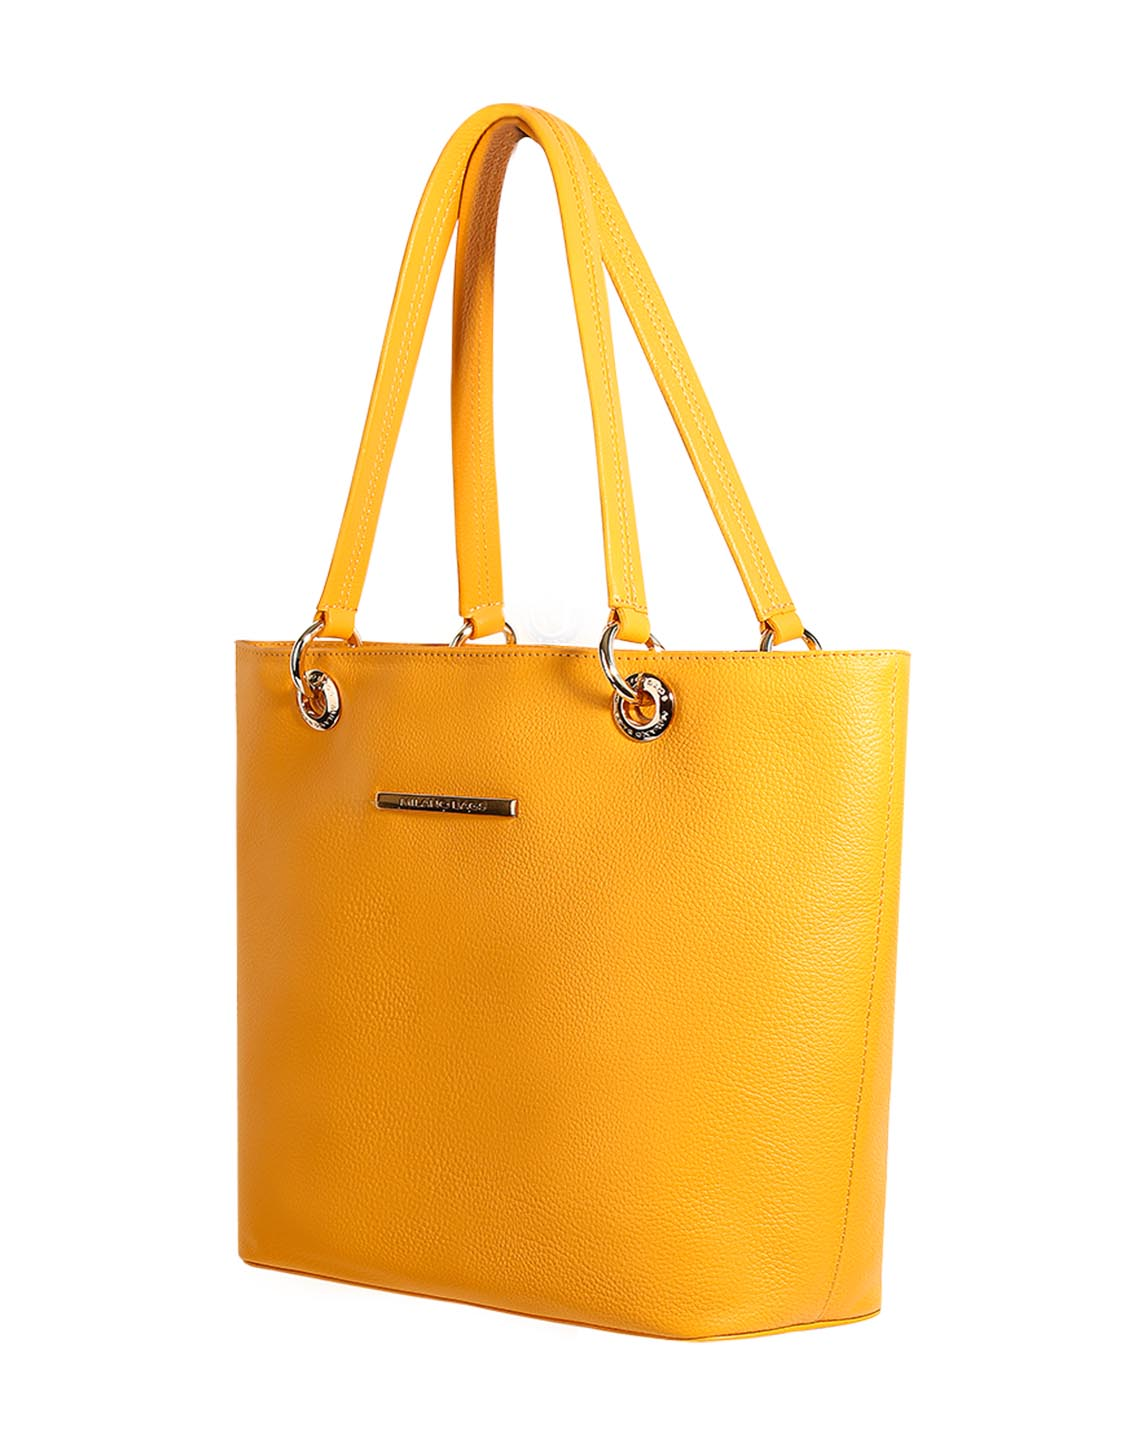 Cartera Tote Bag DS-2530 Color Amarillo